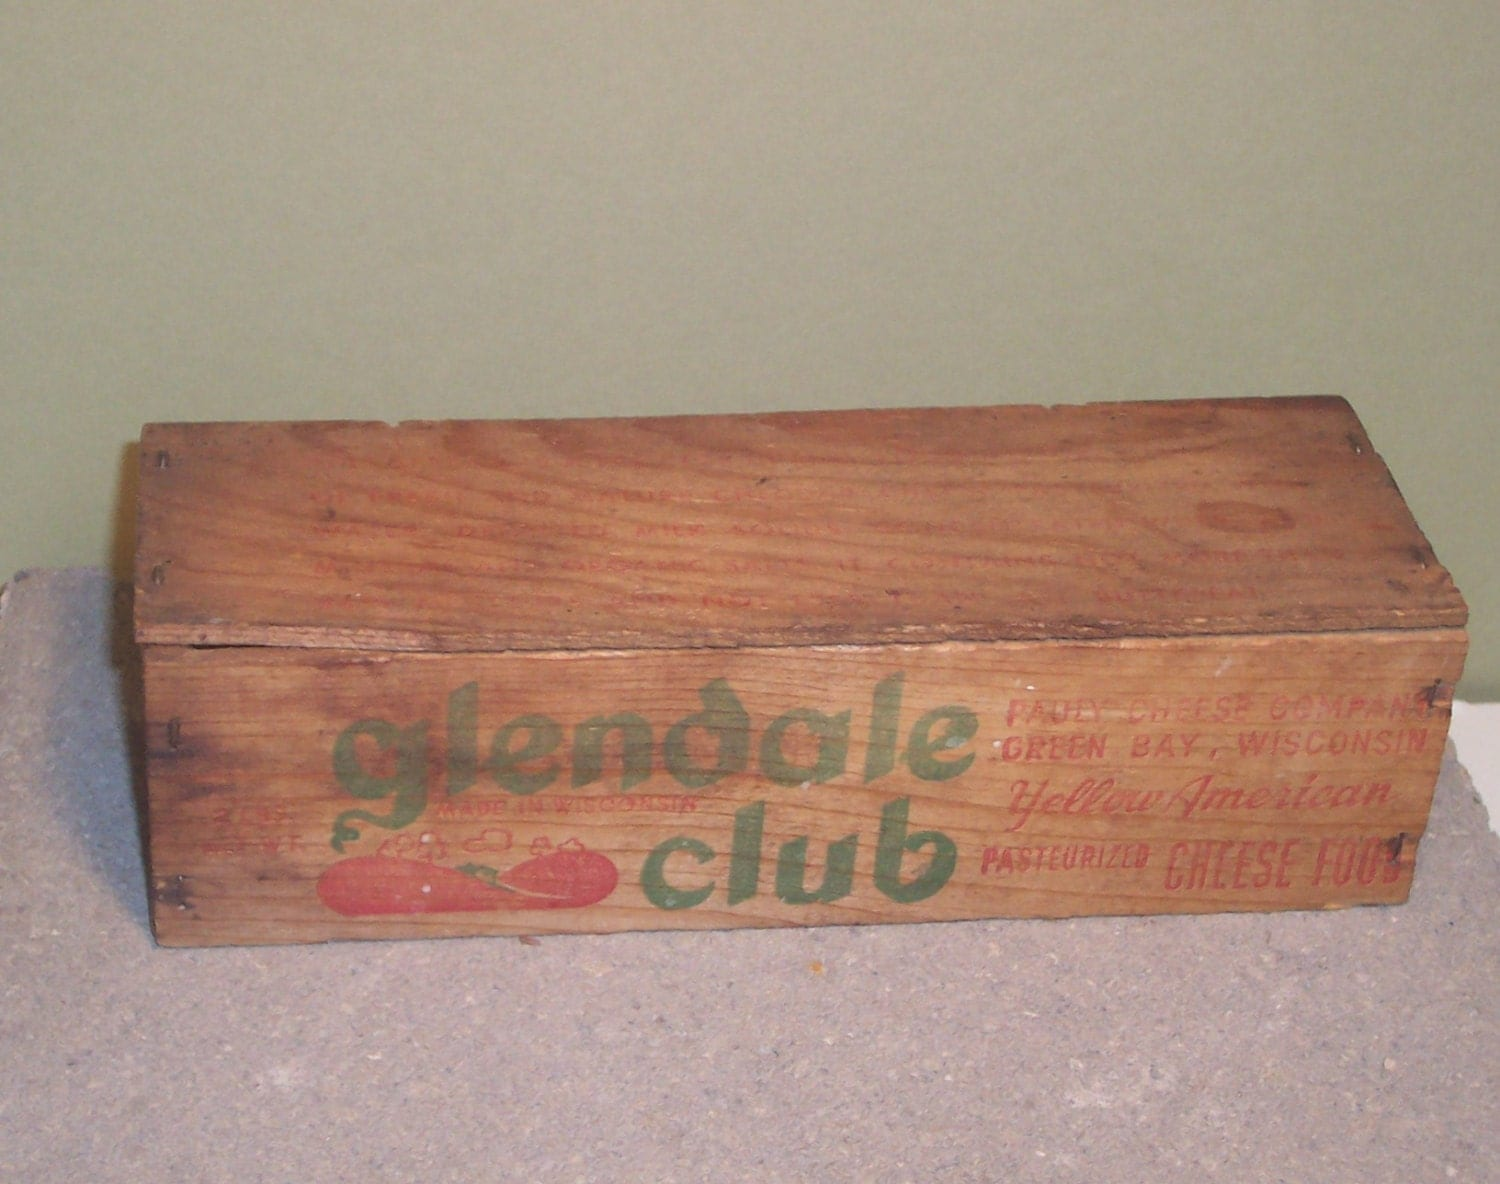 Vintage Wooden Cheese Box Glendale Club Pauly Cheese Co Green Bay Wi